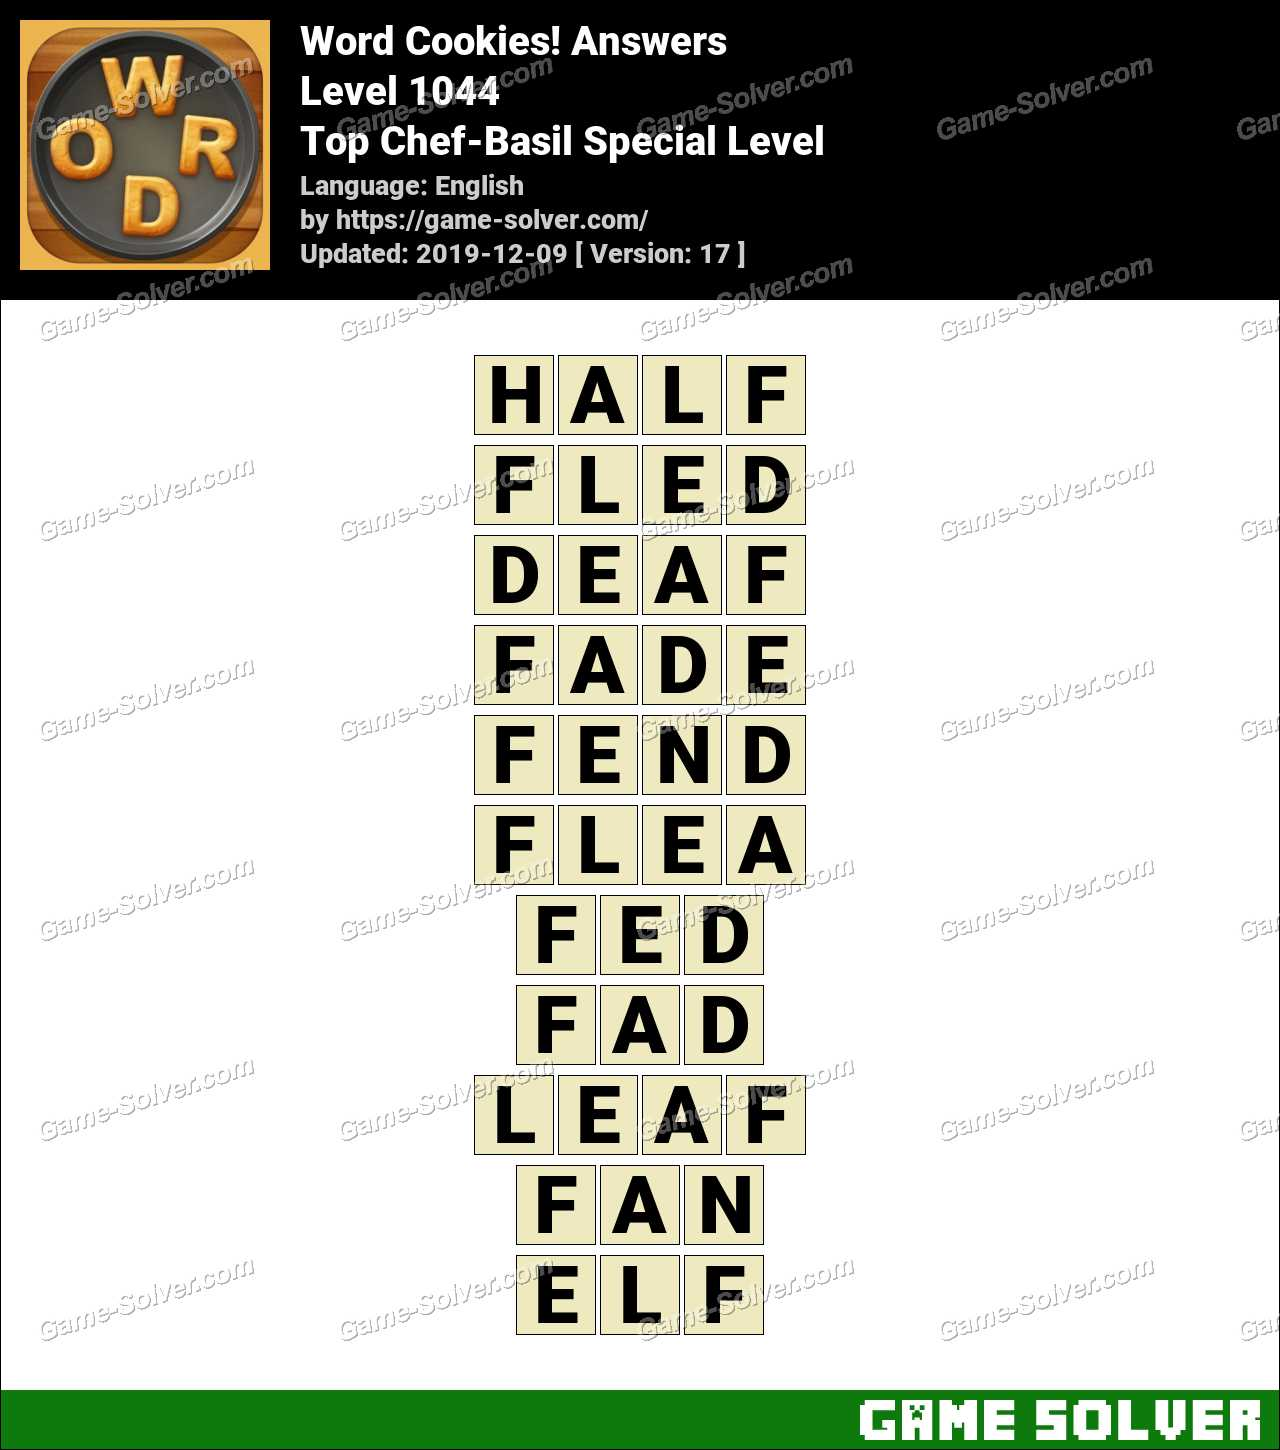 Word Cookies Top Chef-Basil Special Level Answers